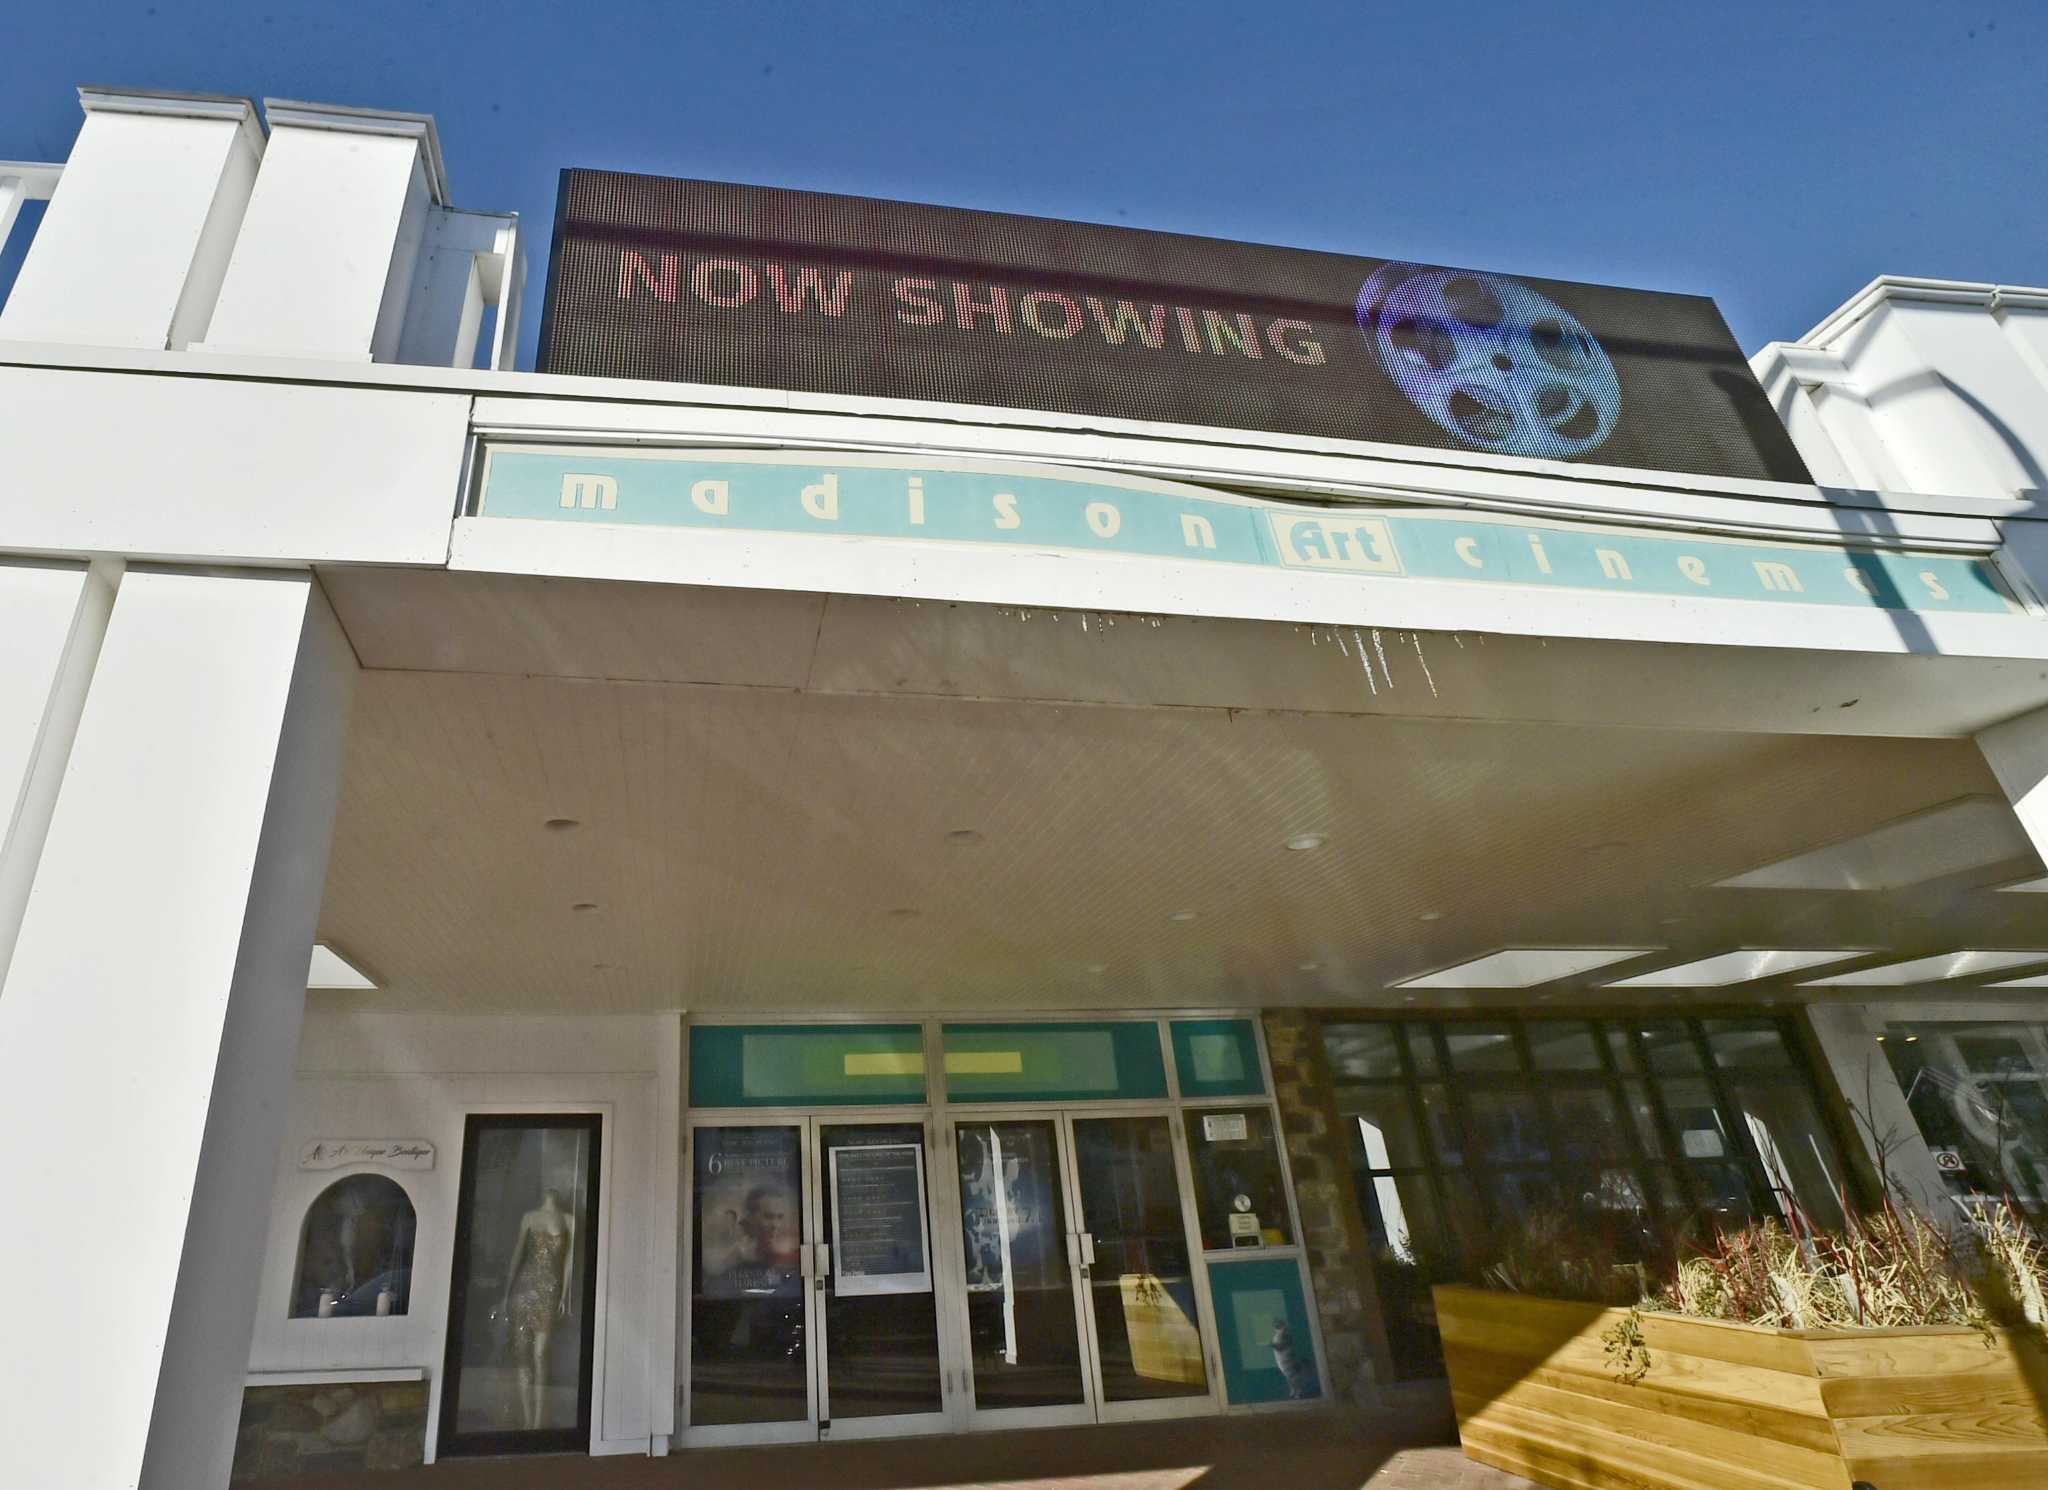 High-tech marquee now graces Madison Arts Cinema